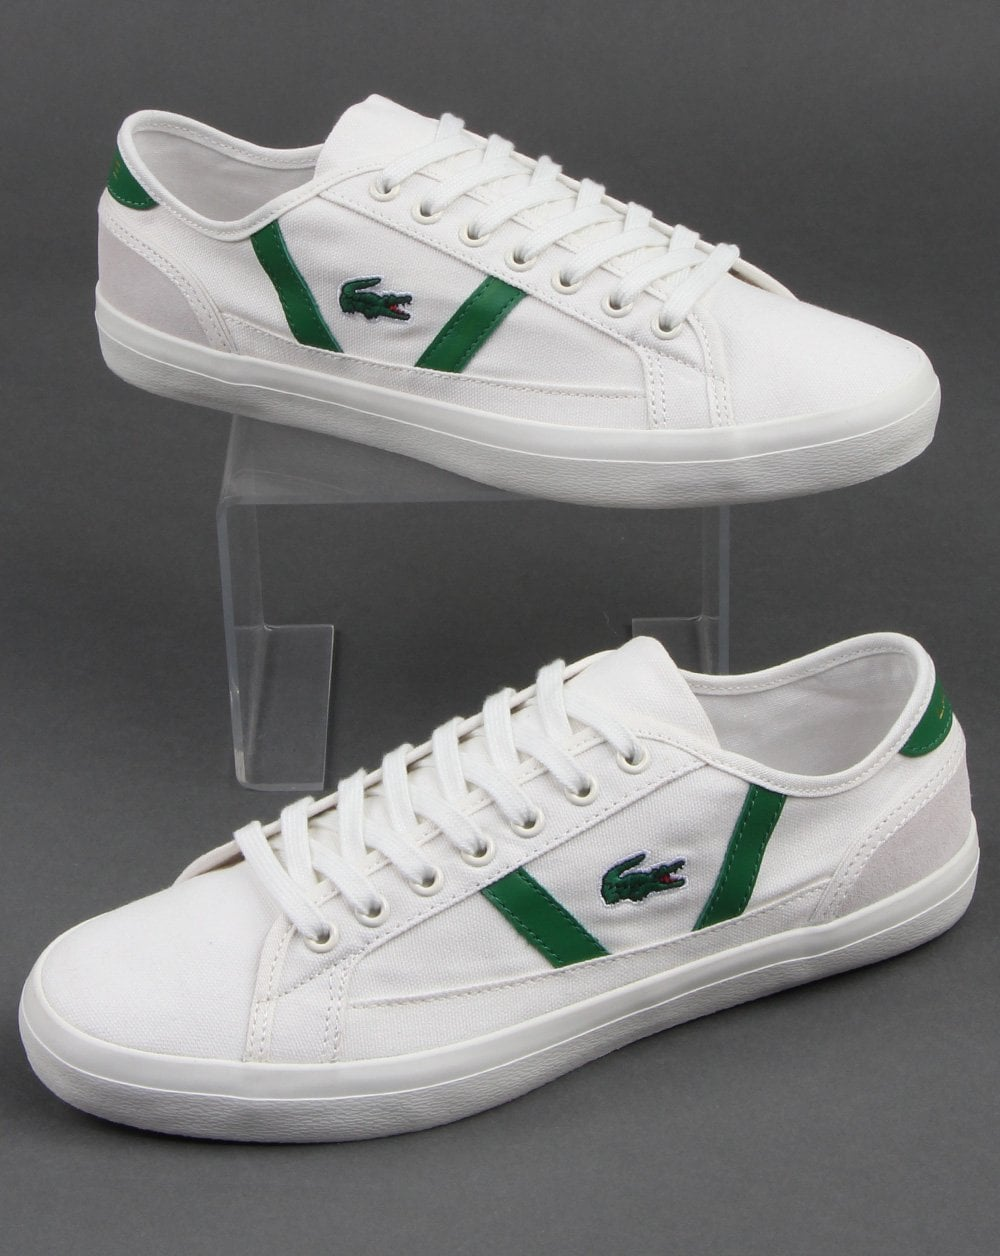 lacoste shoes green white - 65% OFF